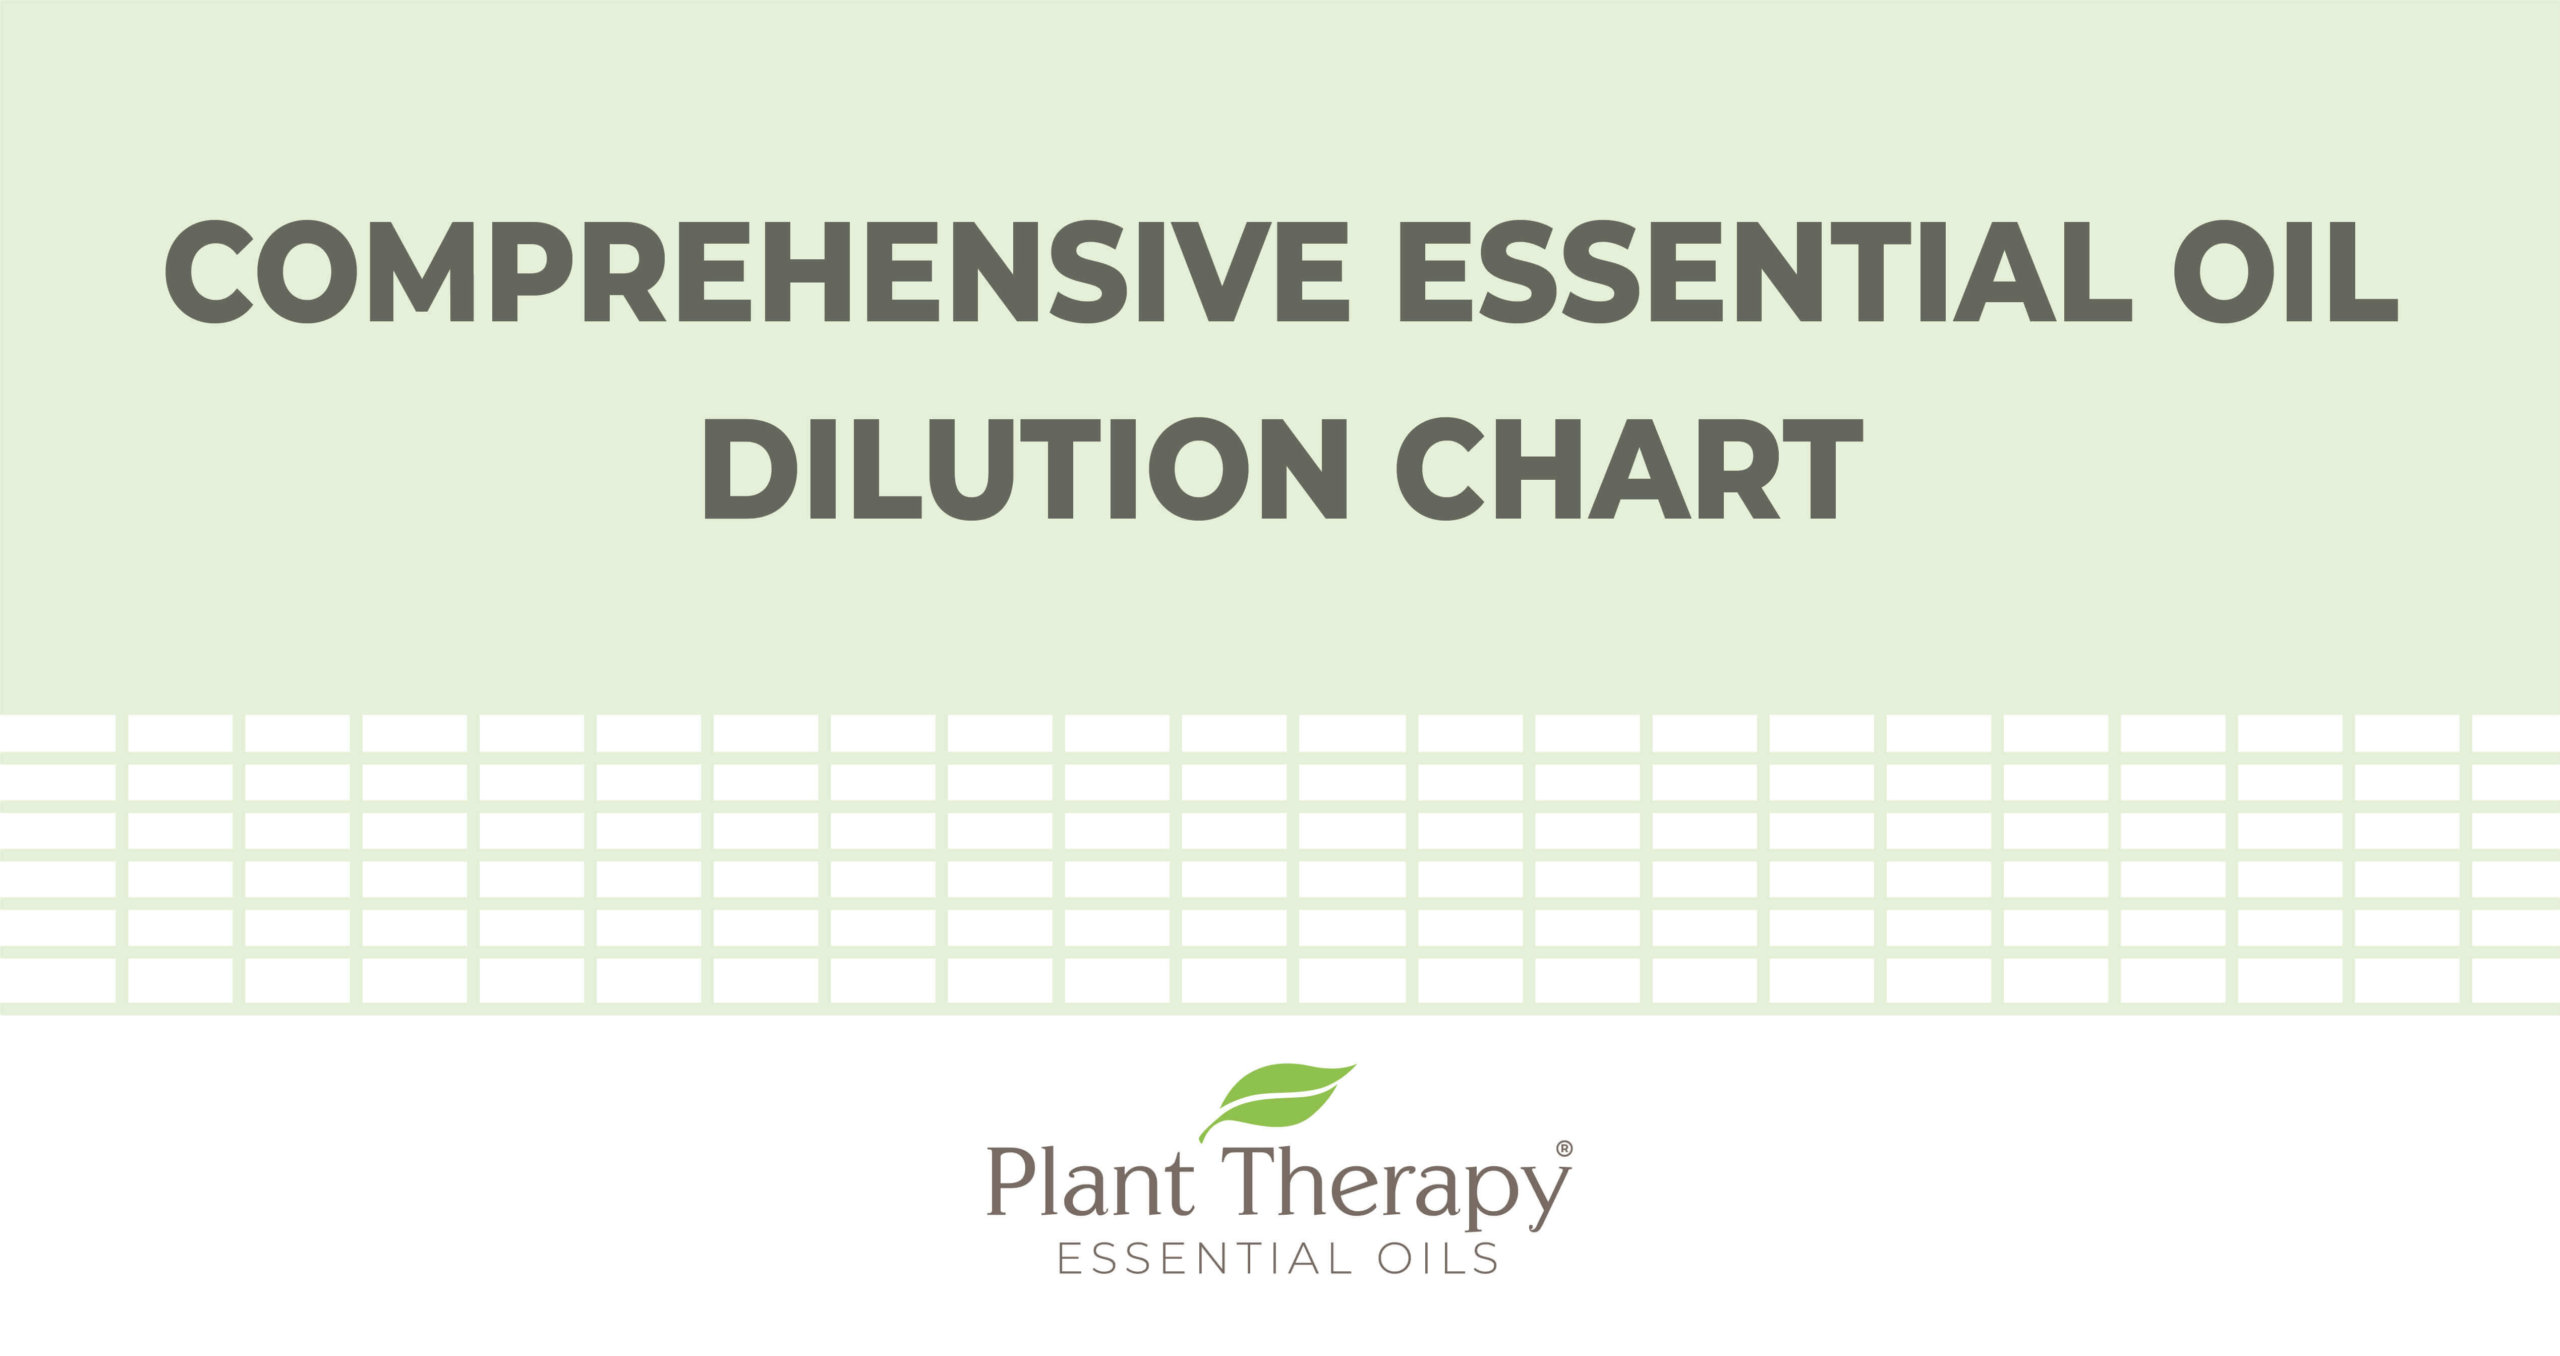 Everyday Essentials Comprehensive Essential Oil Dilution Chart